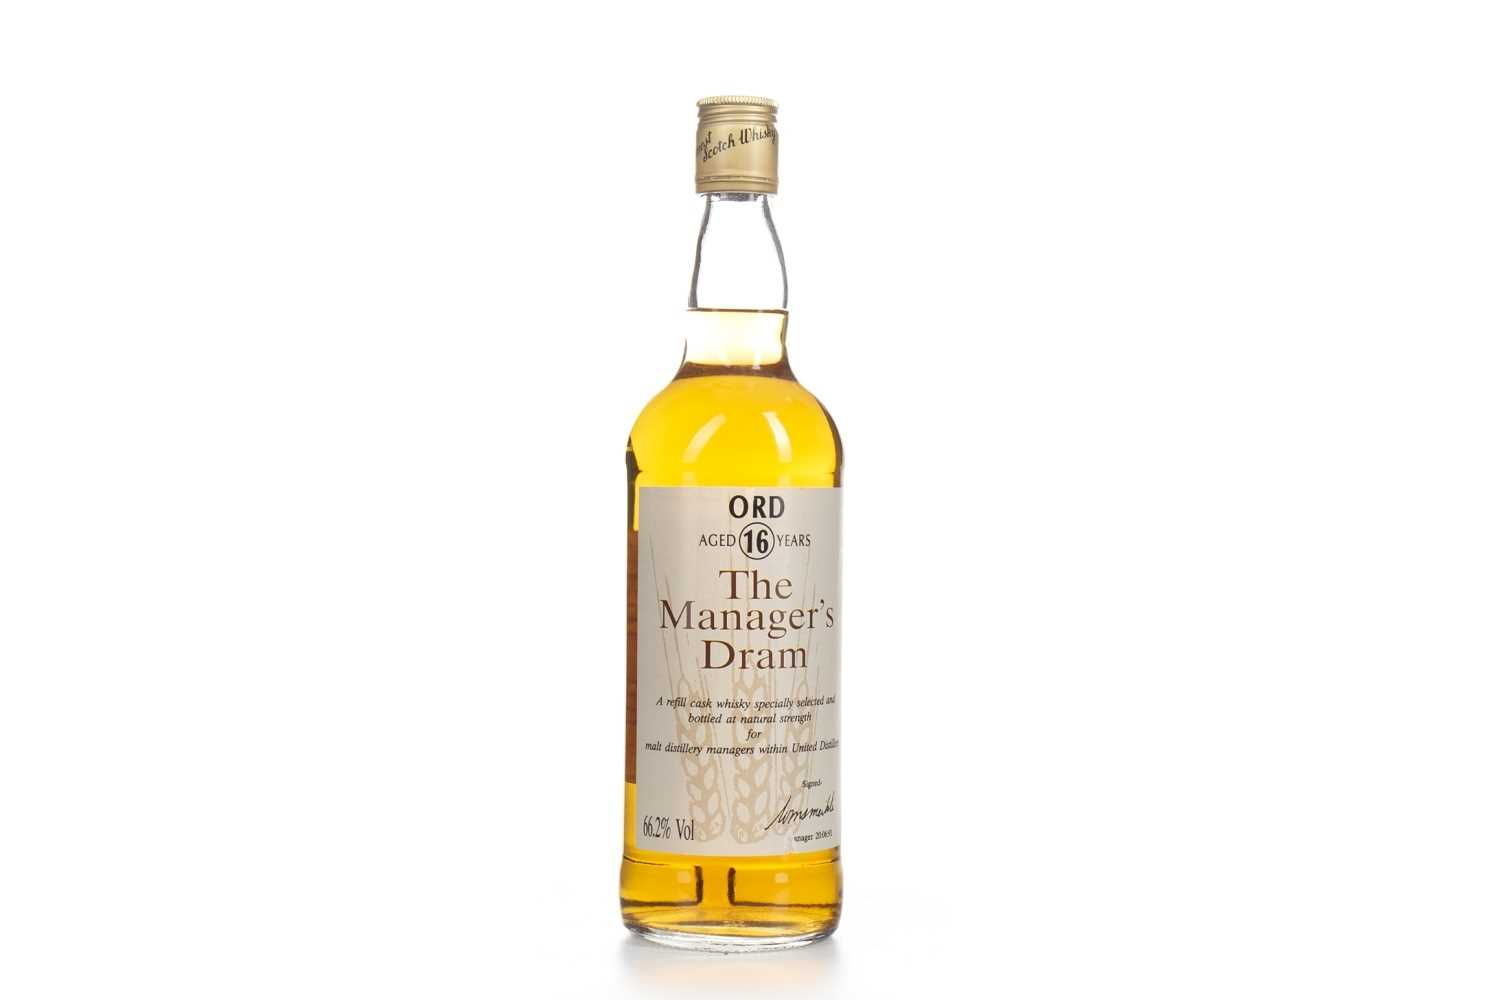 Lot 7-ORD MANAGERS DRAM AGED 16 YEARS